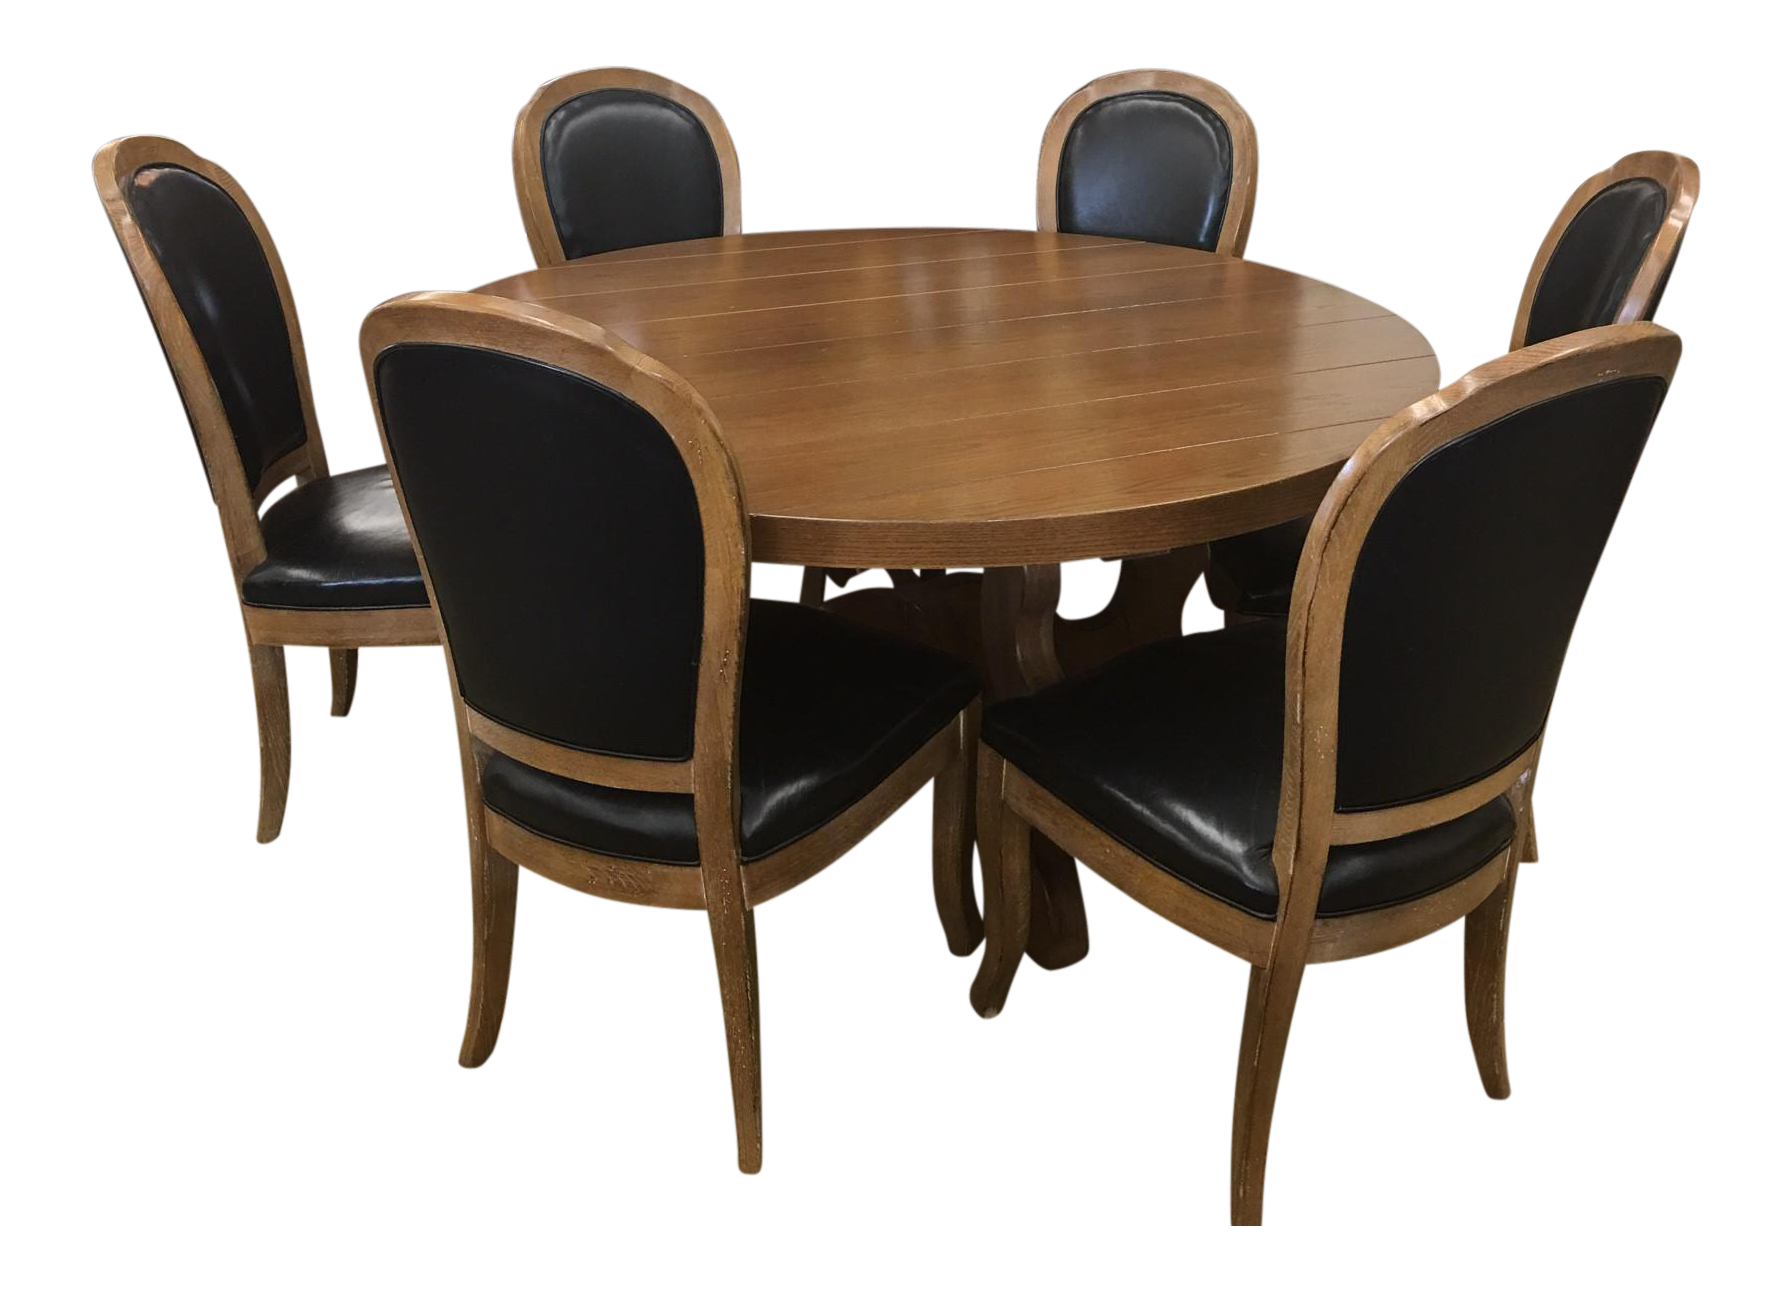 gently used drexel furniture - save up to 70% at chairish